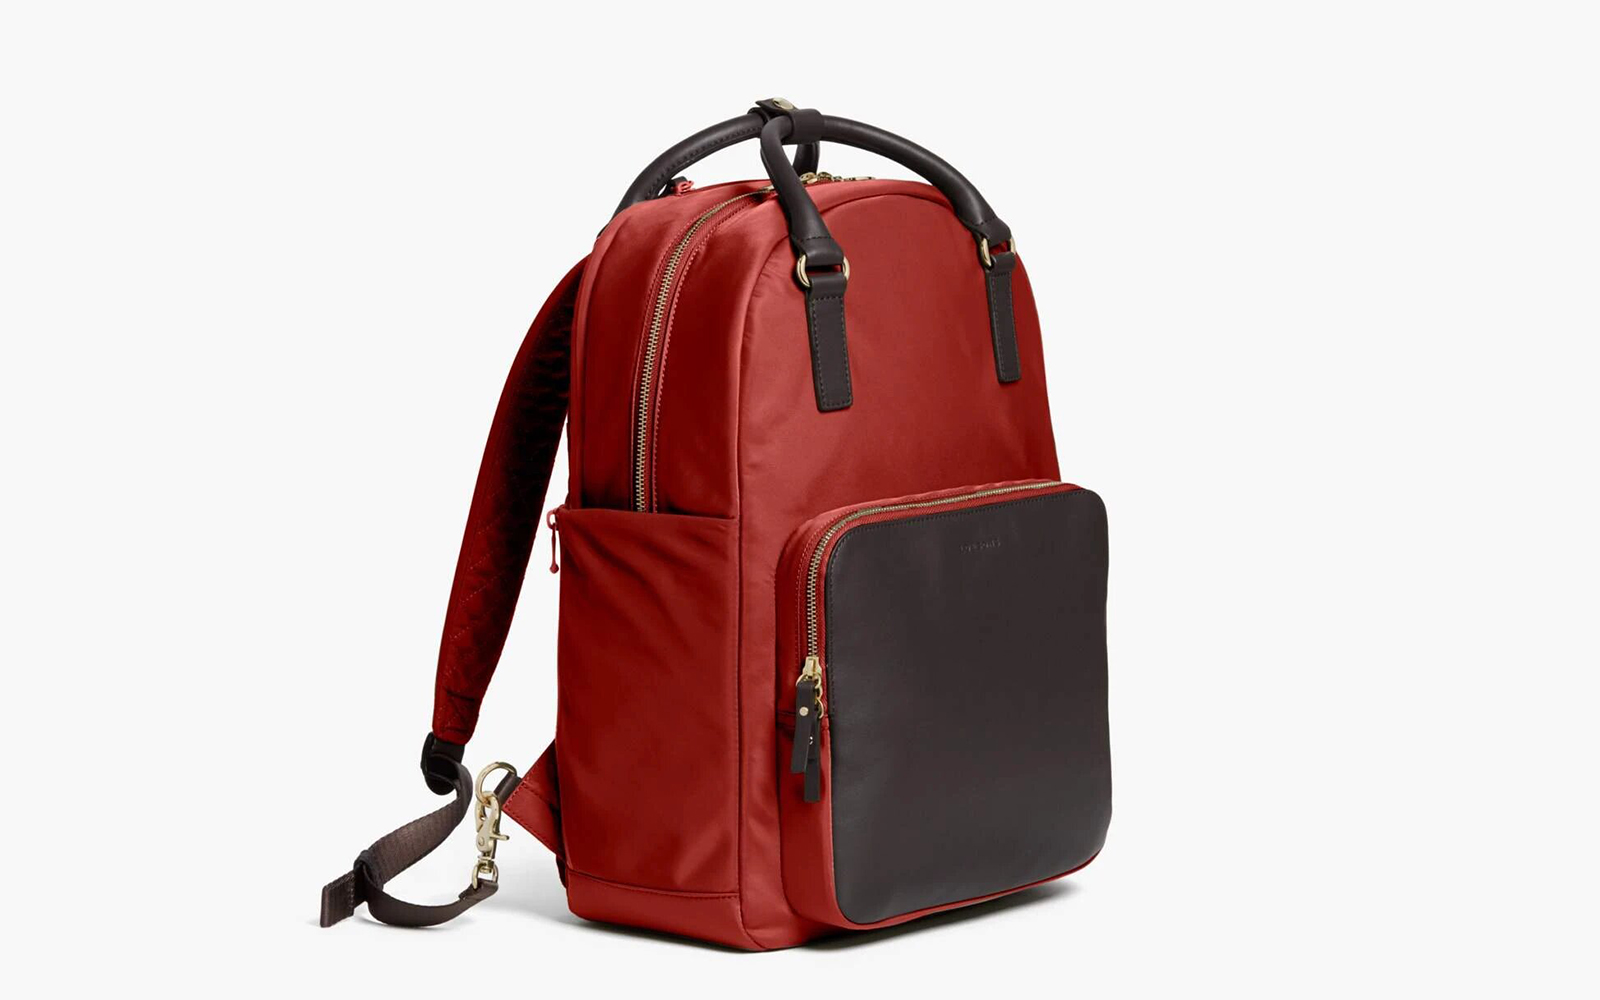 The Rowledge Lo & Sons Business Backpack